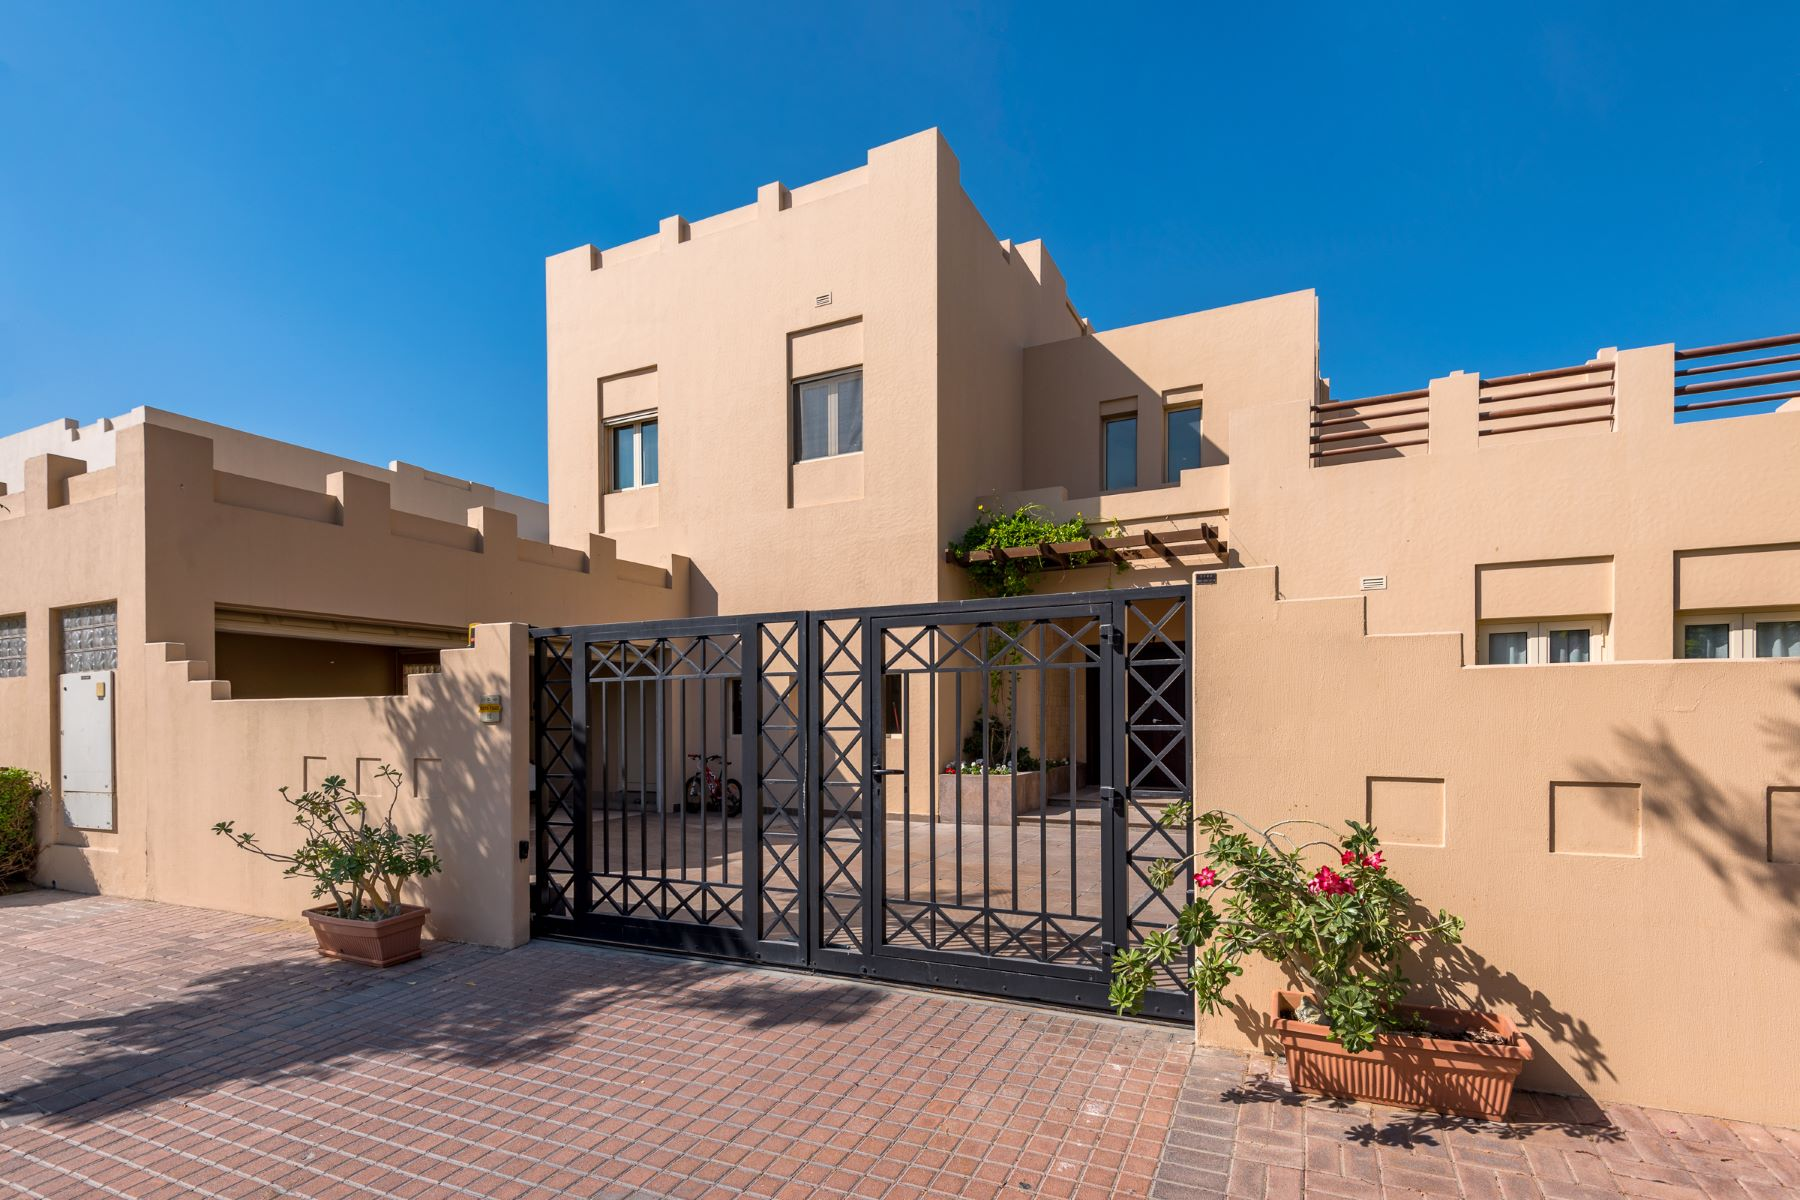 Single Family Home for Sale at Meadows 8 Hattan L1 Other Dubai, United Arab Emirates